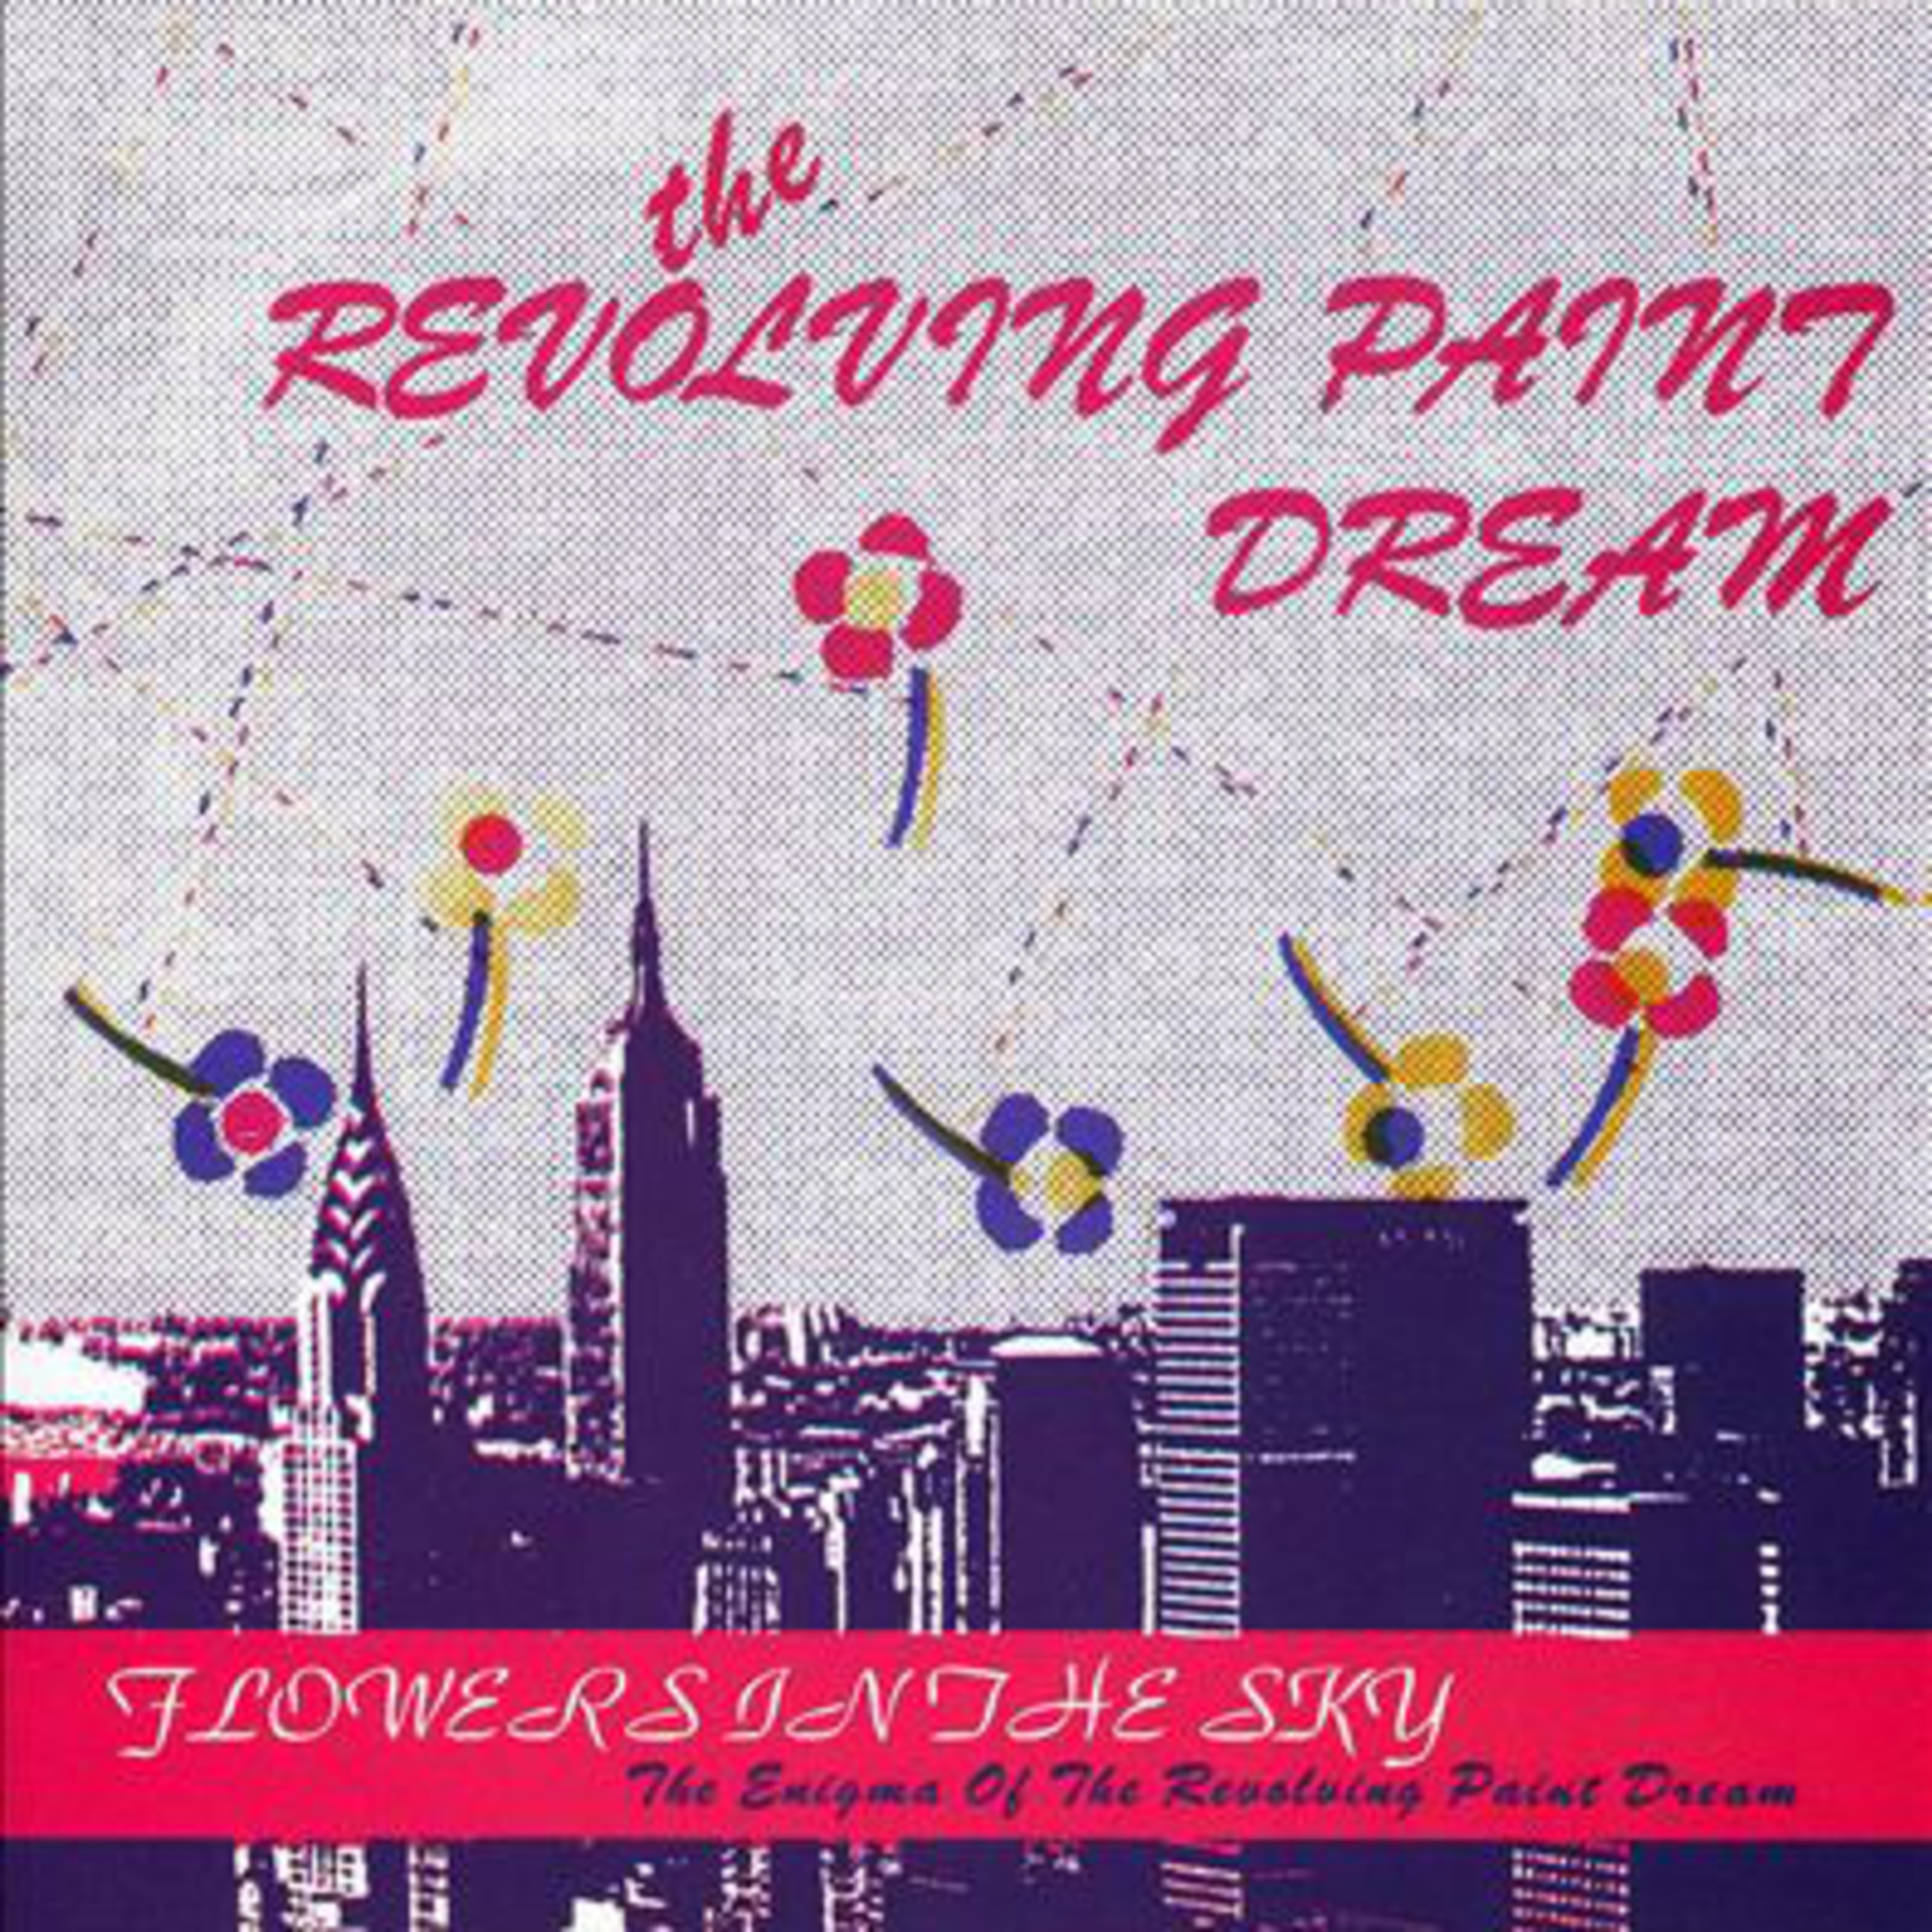 """CRE002 - Revolving Paint Dream - """"Flowers In The Sky"""" w/ Ken Popple (Biff! Bang! Pow!, Revolving Paint Dream, Laughing Apple)"""